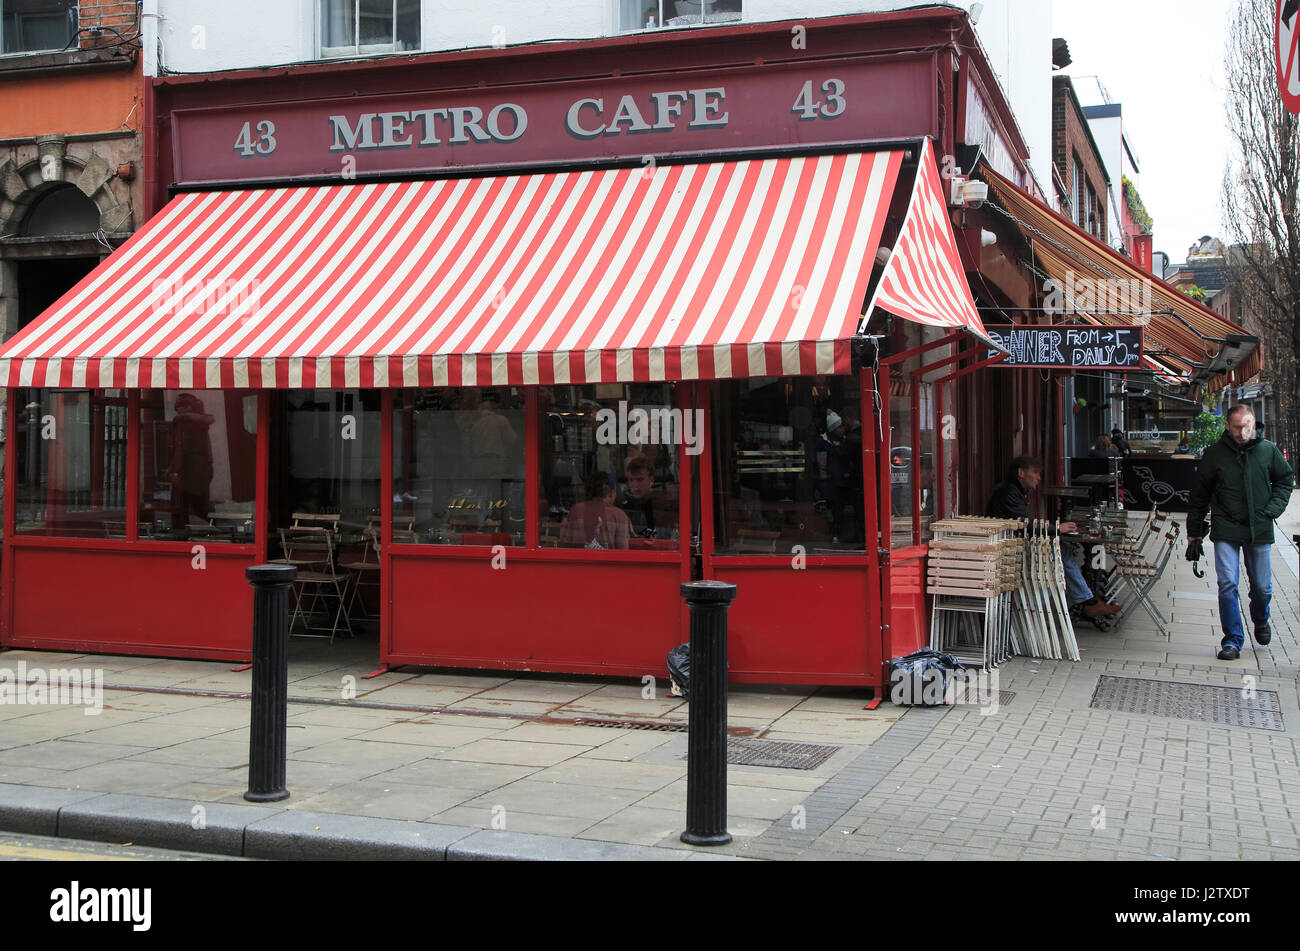 metro cafe south william street city centre dublin ireland